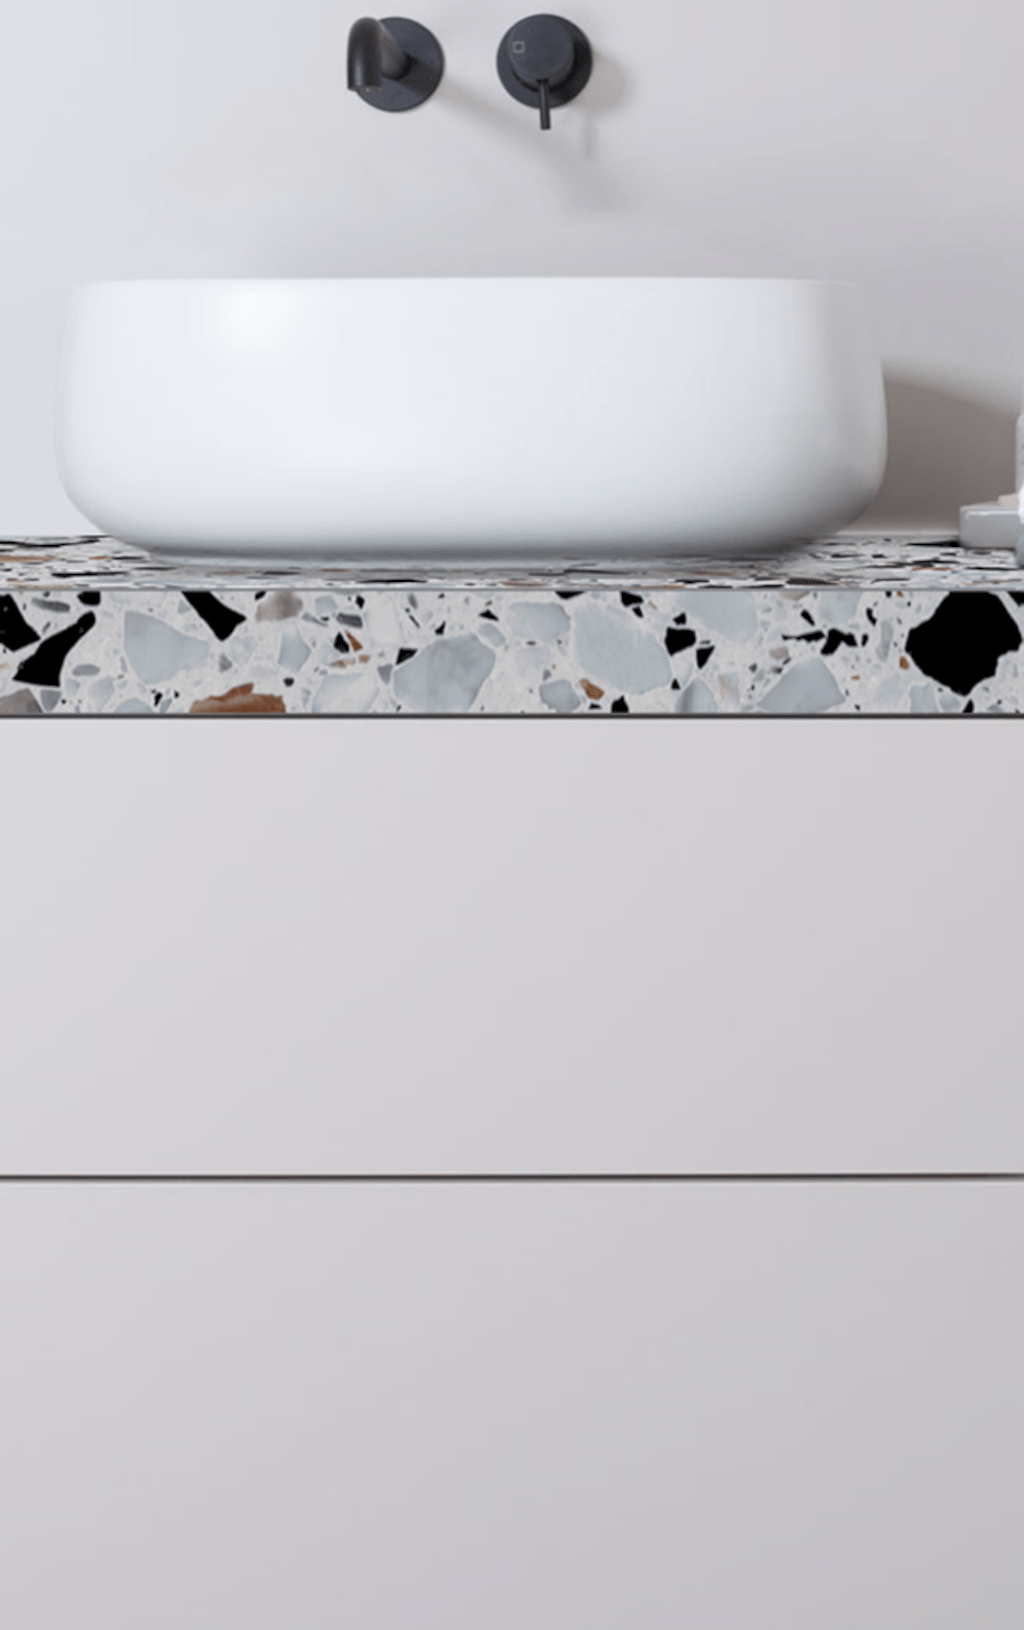 Creative bathroom updates mixing modern trend with simple 60s terrazzo style giving a brilliant contemporary balance Image 14